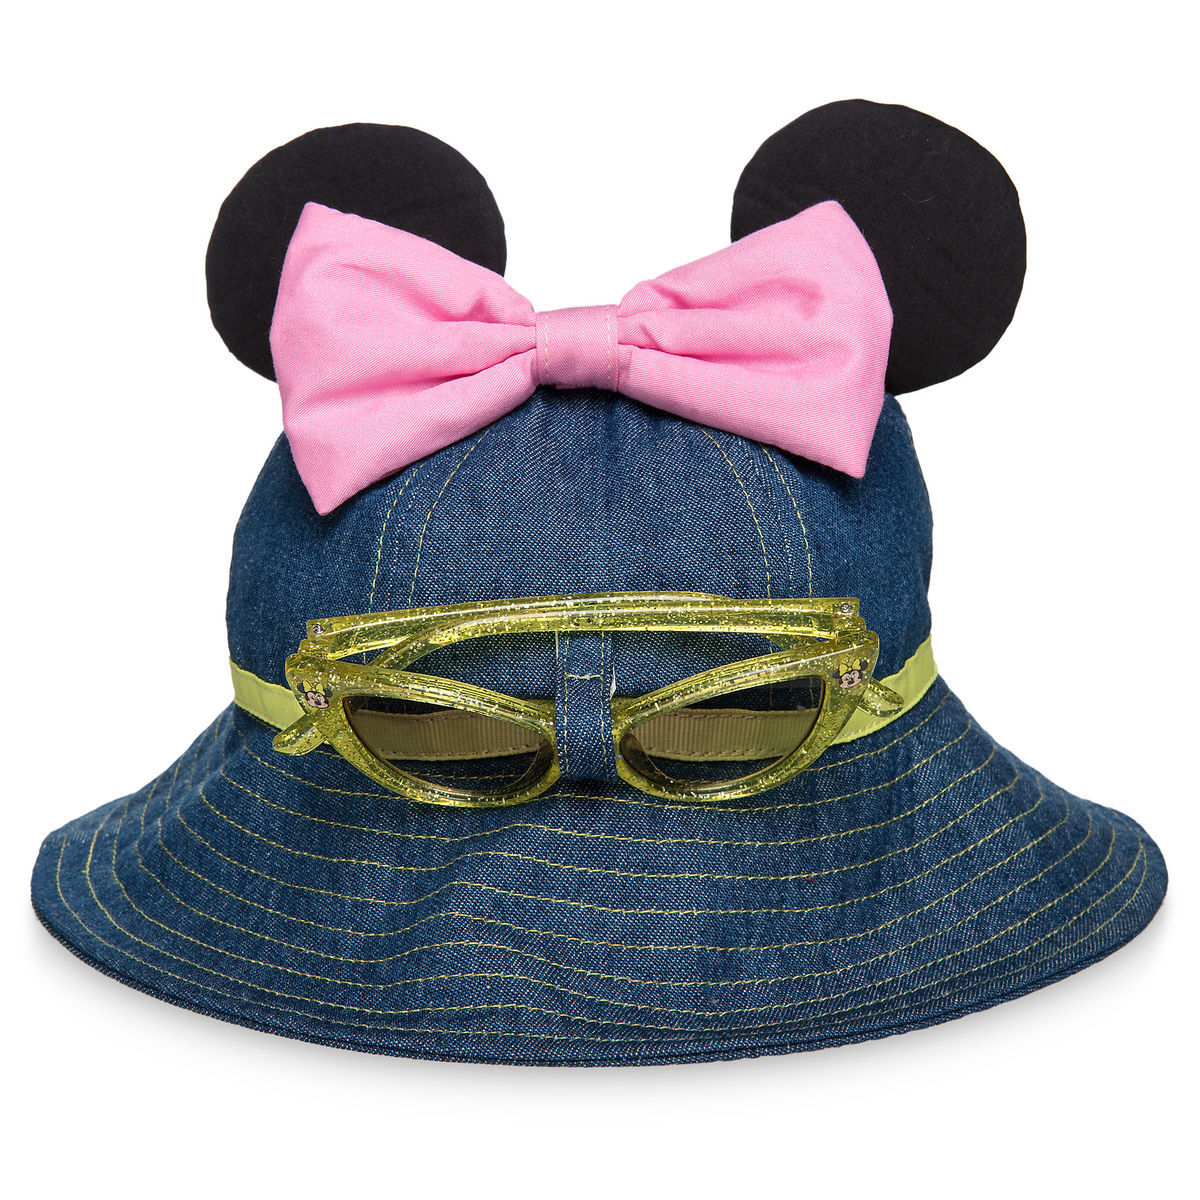 Product Image of Minnie Mouse Hat and Sunglasses Set for Baby   1 db2440bc04f7